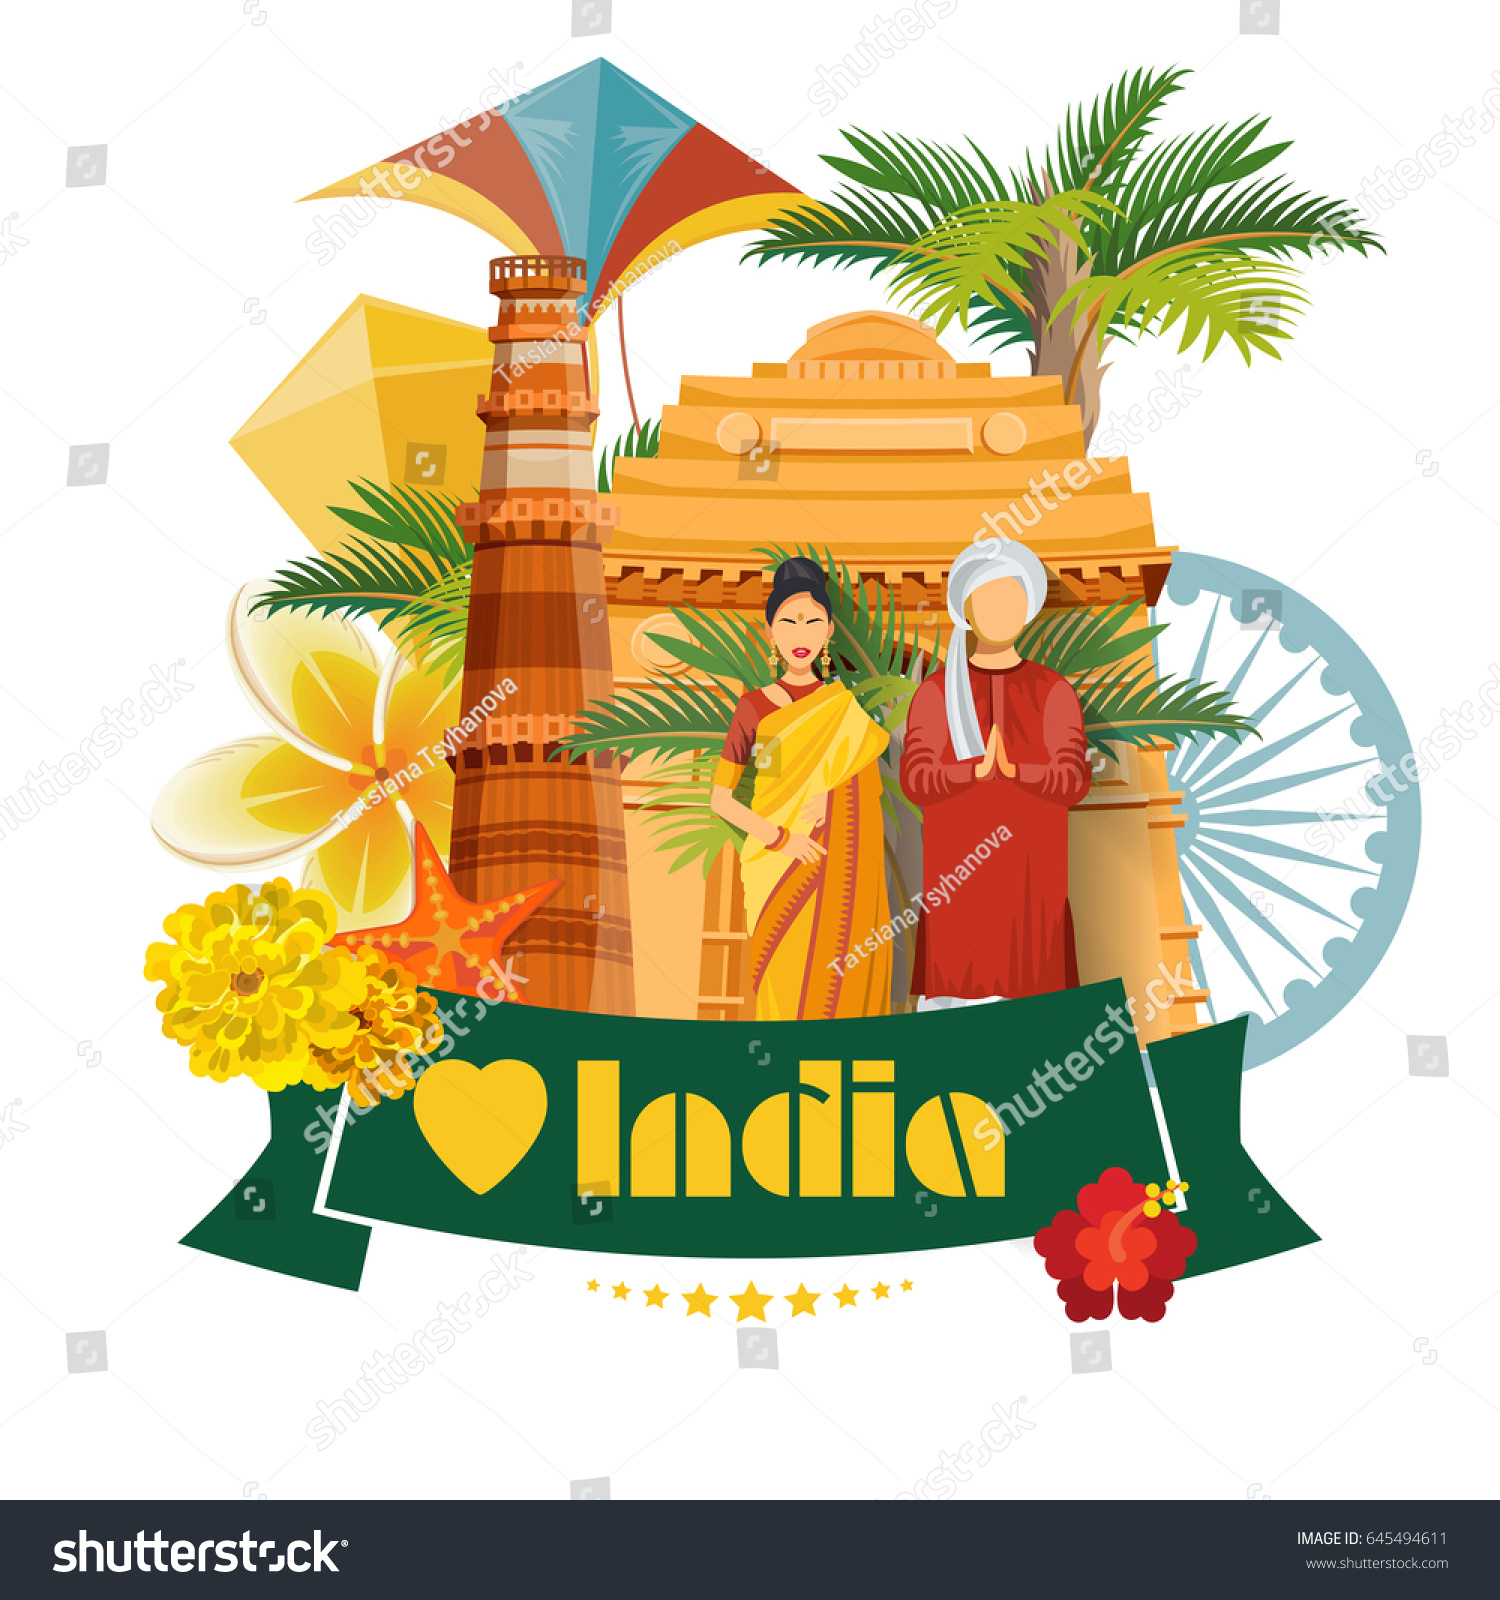 India vector illustration indian colorful concept stock vector india vector illustration indian colorful concept poster with traditional indian items greeting card m4hsunfo